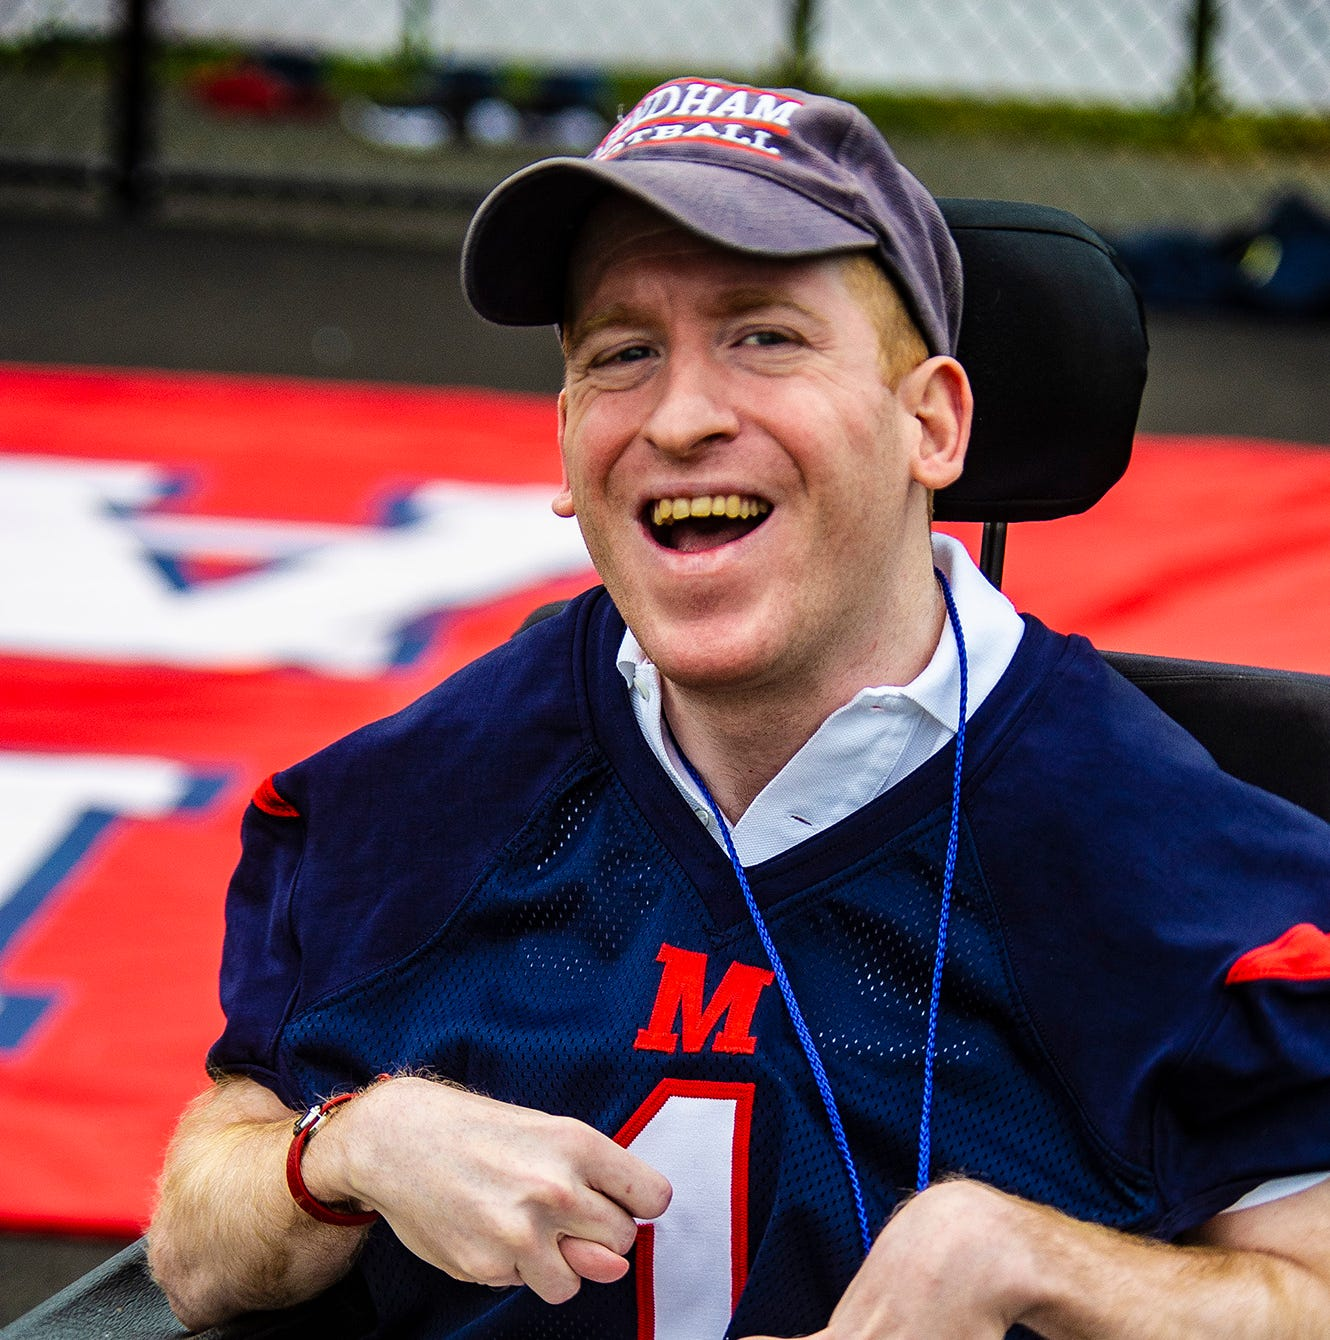 Mendham superfan Geoffrey d'Aries nears his 200th consecutive game at the West Morris Central at Mendham rivalry football game at Mendham High School in Mendham Borough, September 8, 2018.